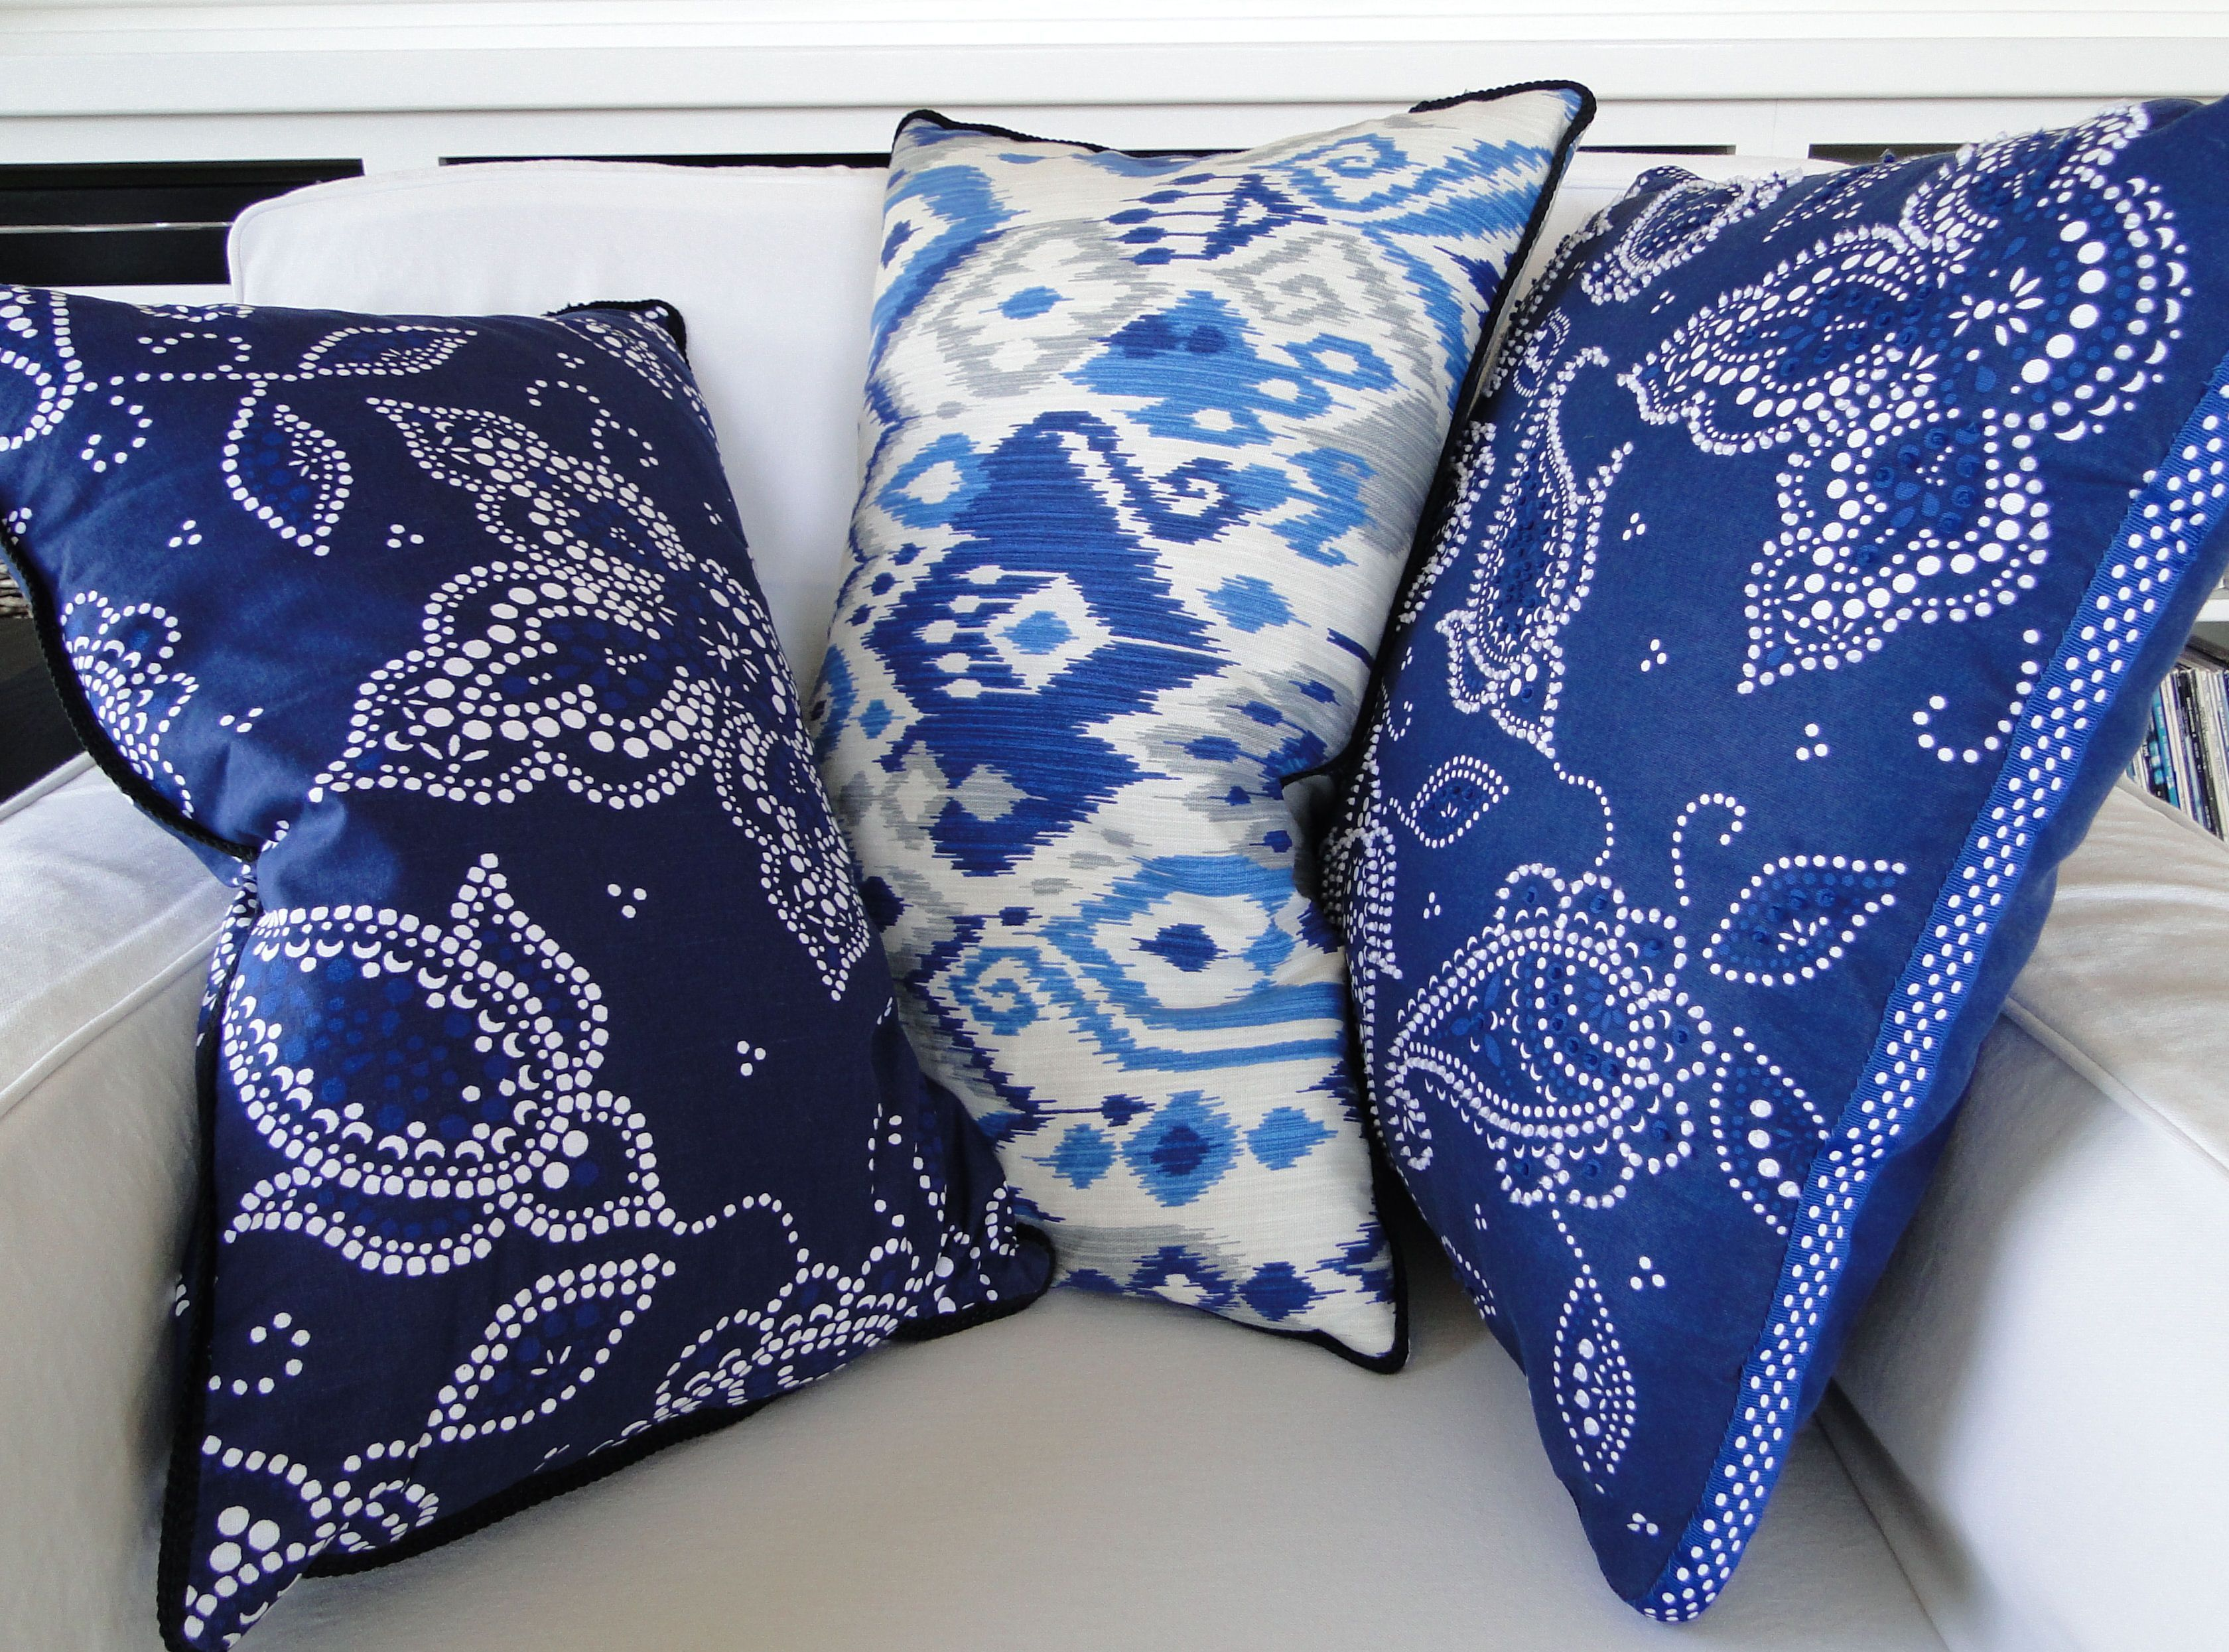 50 Decorating Ideas to Live By: 11. Seasonal Decorating Makeover. For pillows, the perfect blue&white fabrics were found - in shower curtains! Yep, 100% cotton shower curtains. Bed, Bath & Beyond had this IKAT print, Target the Indian paisley. They also had 20 pillows in the same fabric. Those got dolled up with polka dot ribbon sewn around the seam lines for a bit more custom look. Read more at www.decorbook.com #indianbeddoll 50 Decorating Ideas to Live By: 11. Seasonal Decorating Makeover. F #indianbeddoll